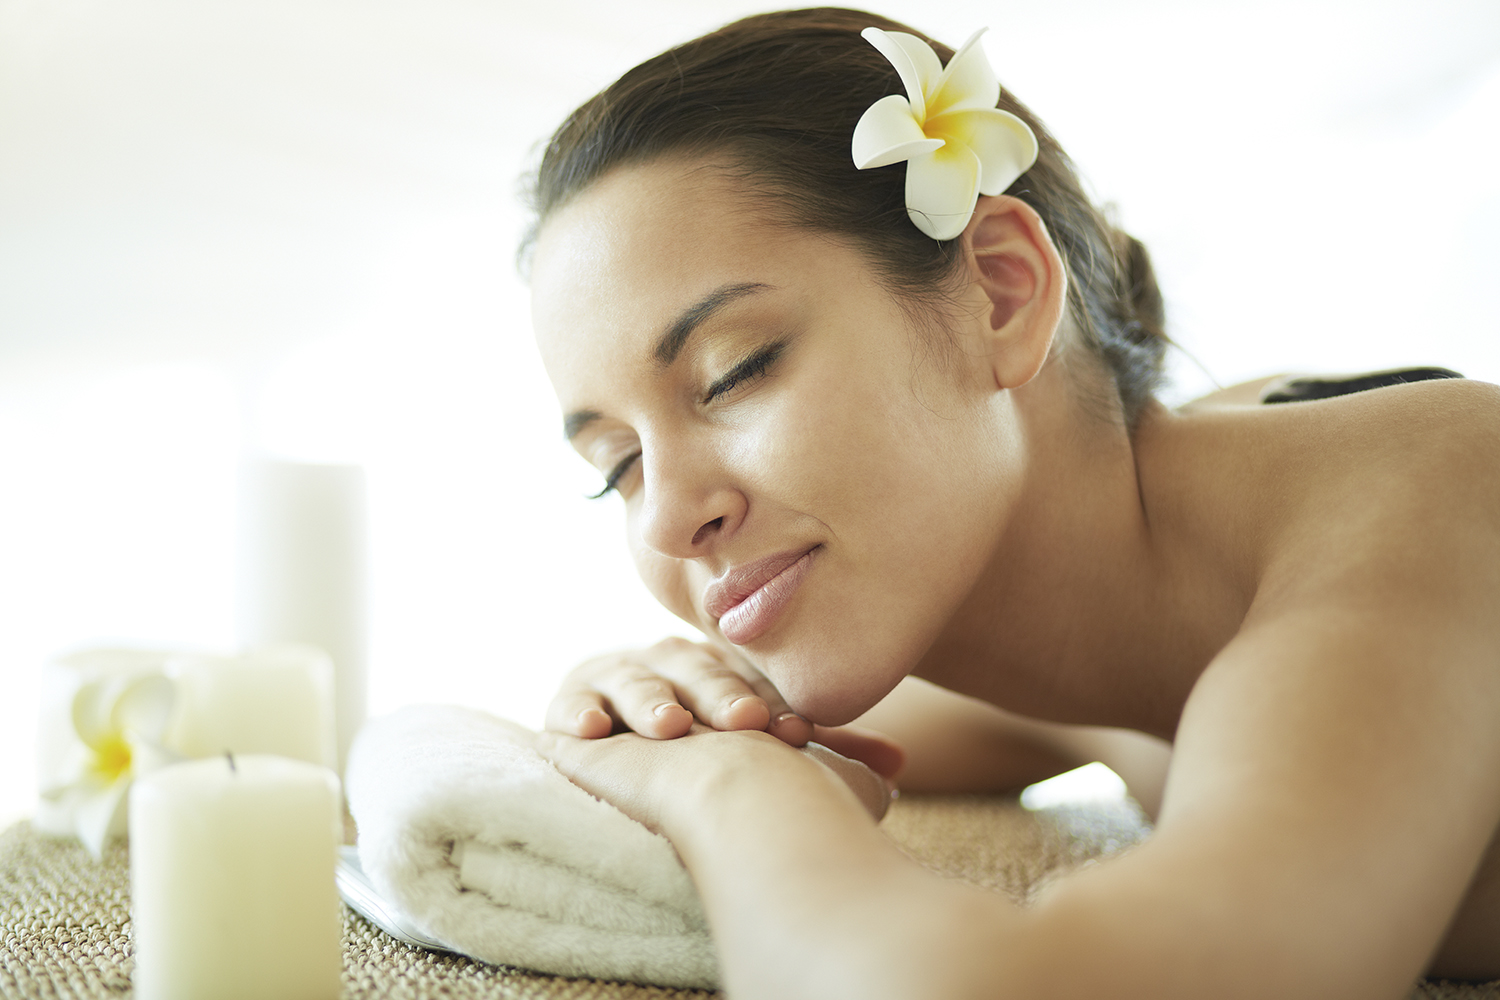 Portrait of young female enjoying procedure of massage